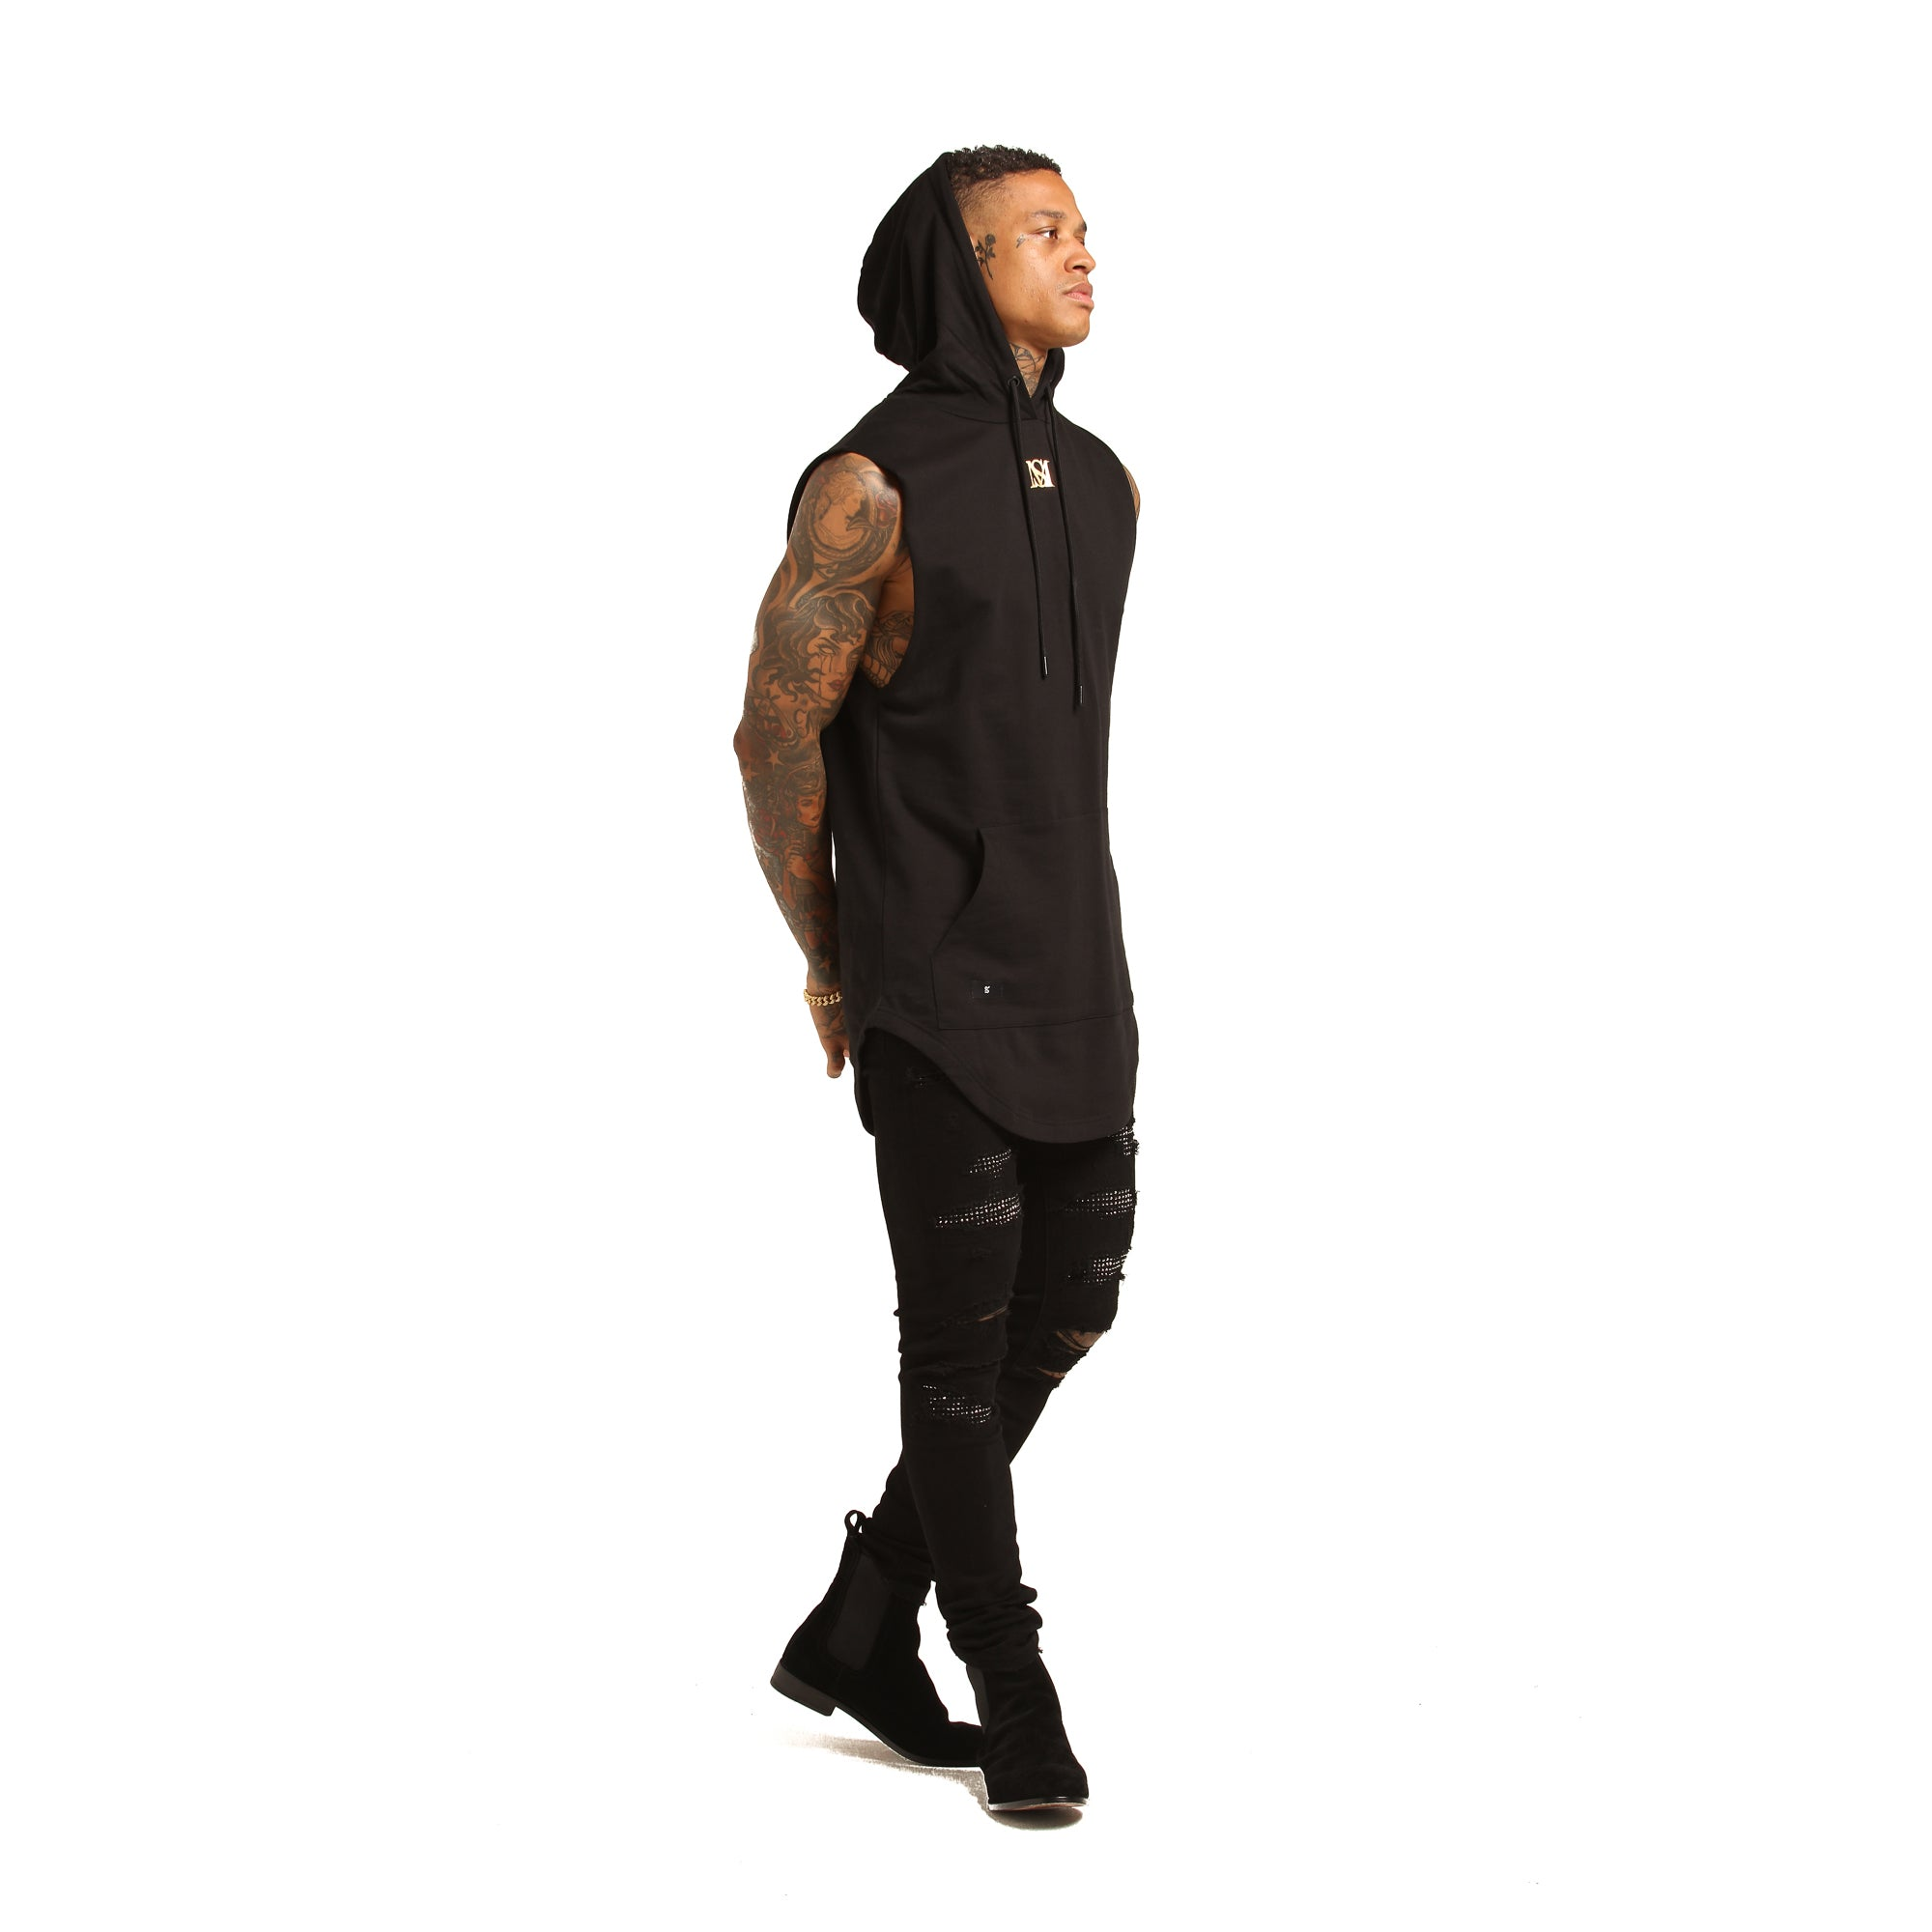 GUILD SLEEVELESS HOODY - Black/Gold